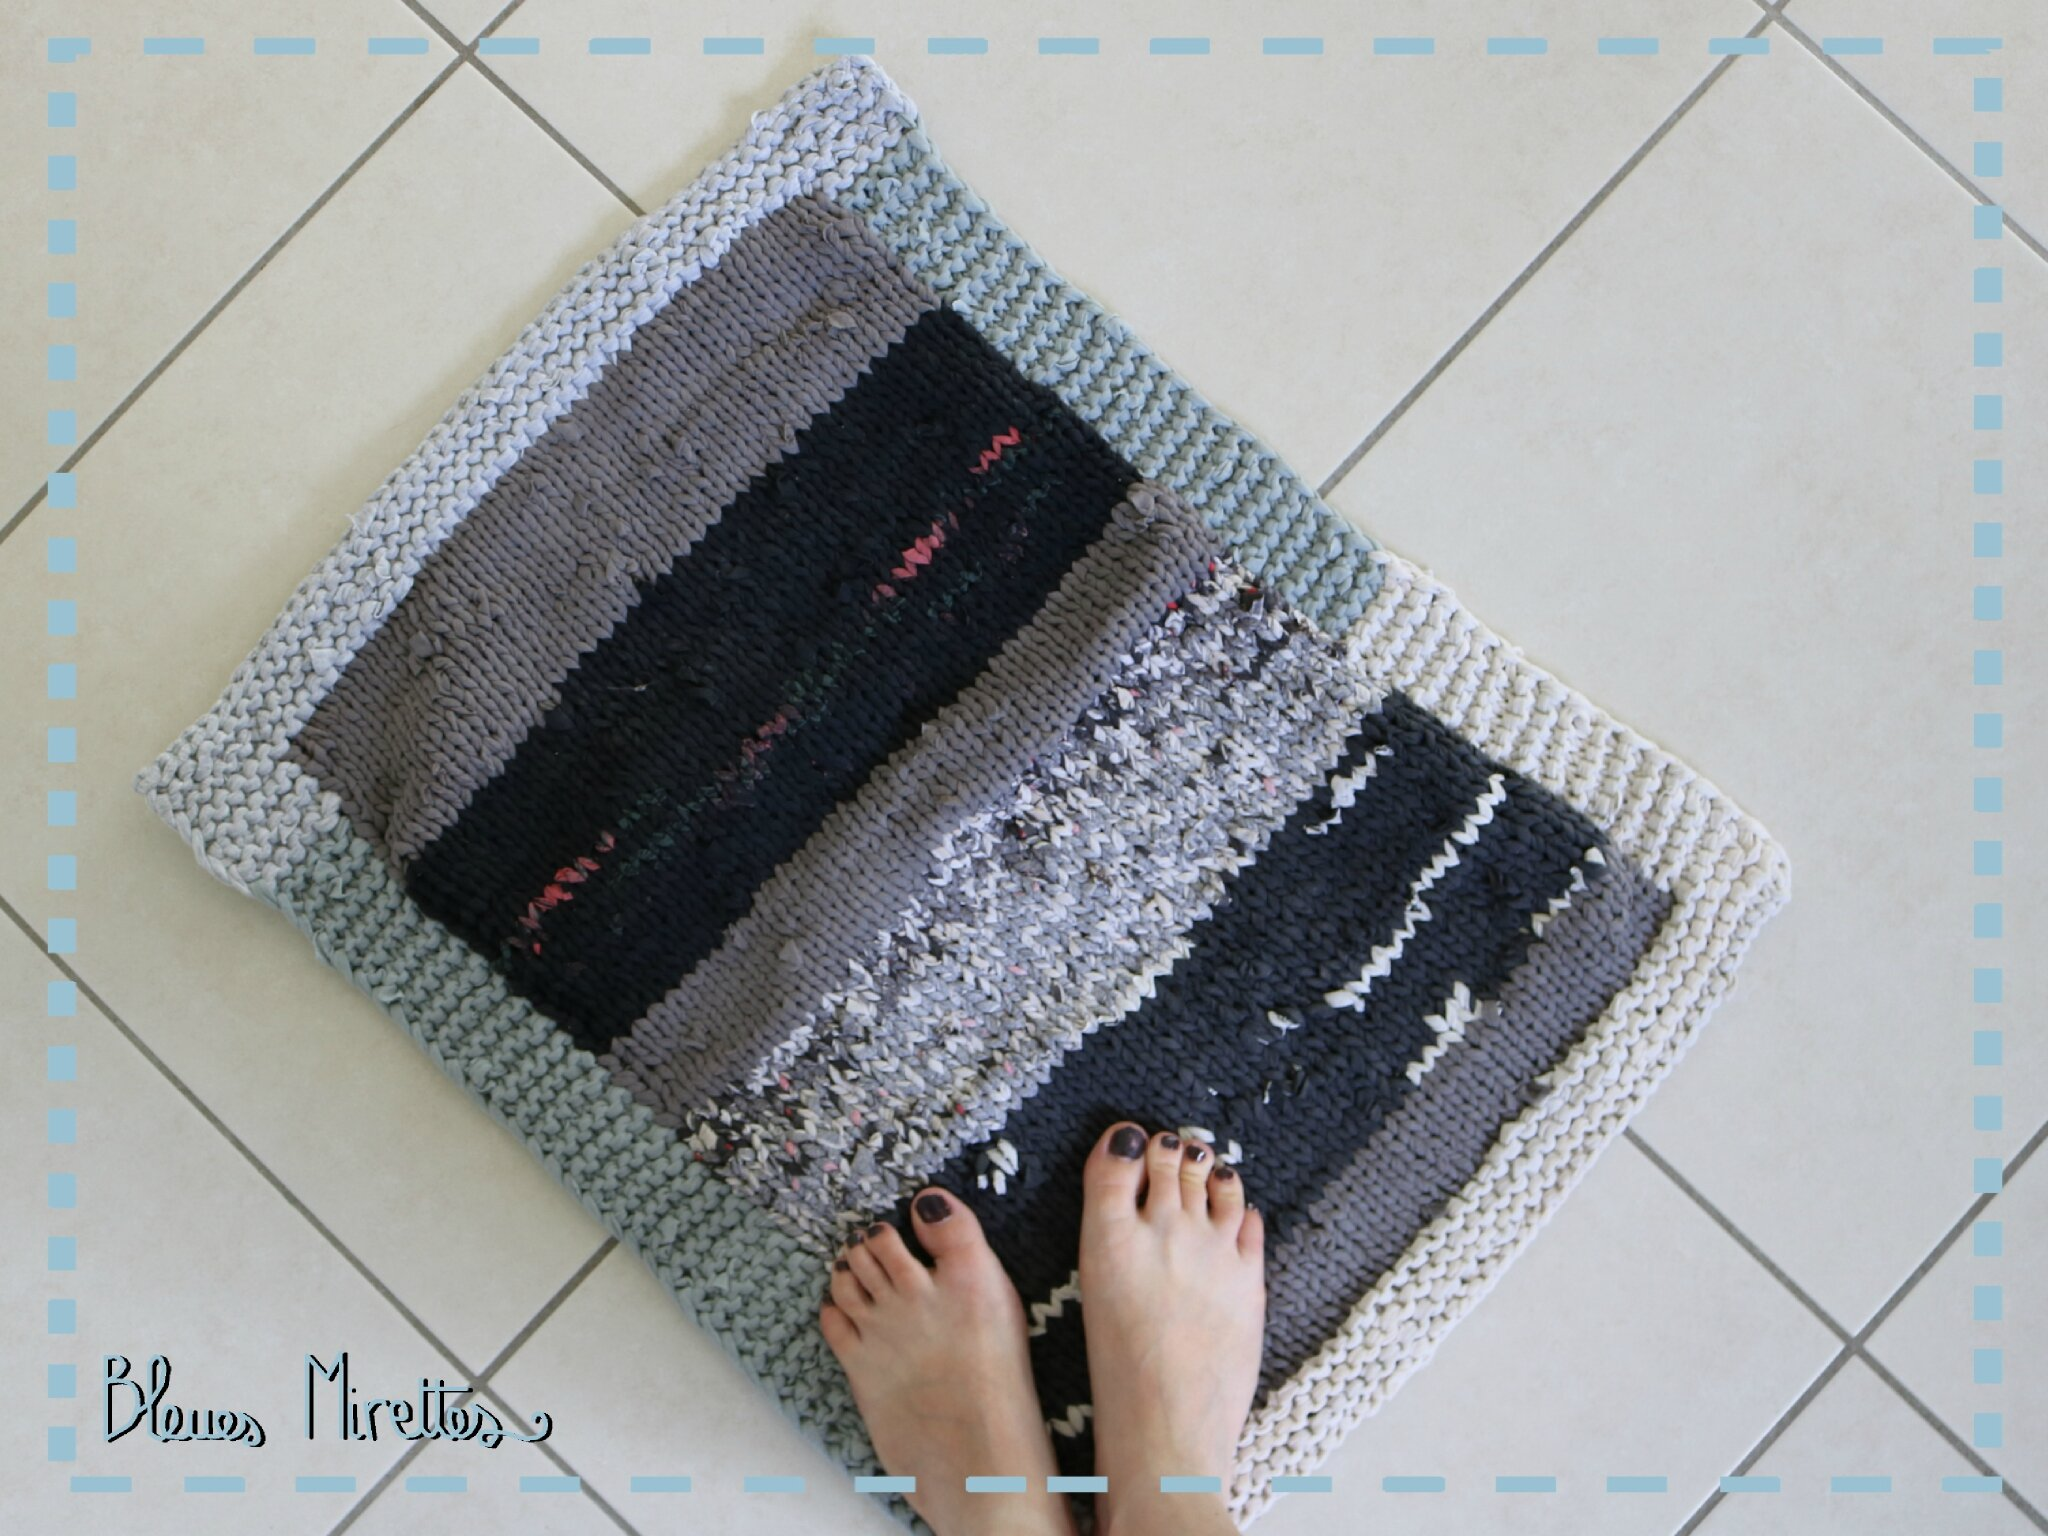 upcycled carpet 5e dition bleues mirettes. Black Bedroom Furniture Sets. Home Design Ideas